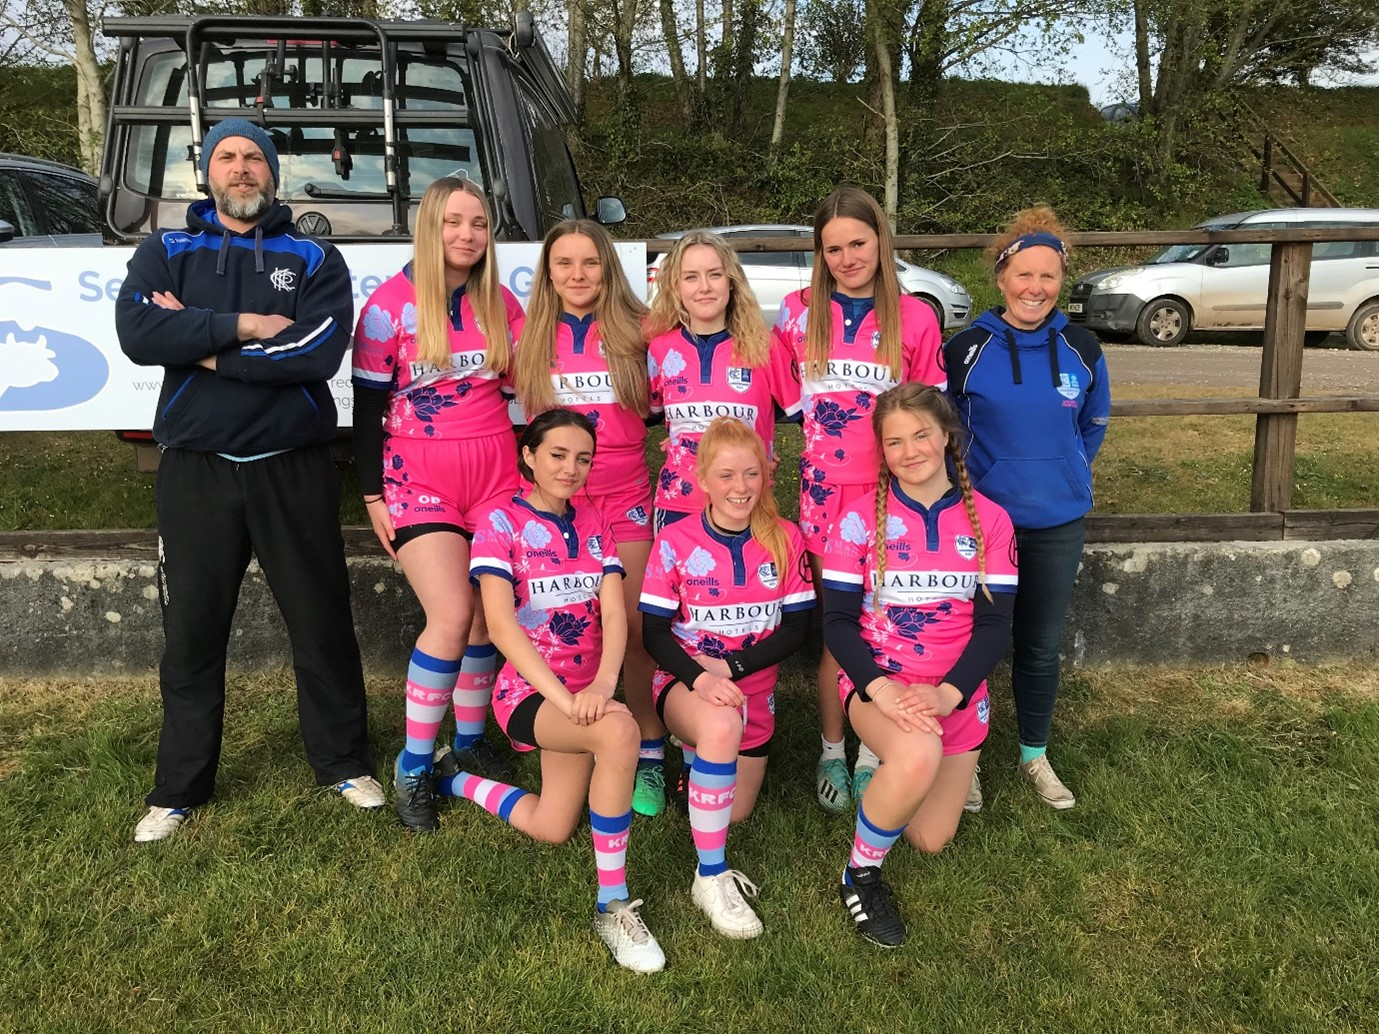 Pavers Foundation donates £500 to Girls Rugby Team